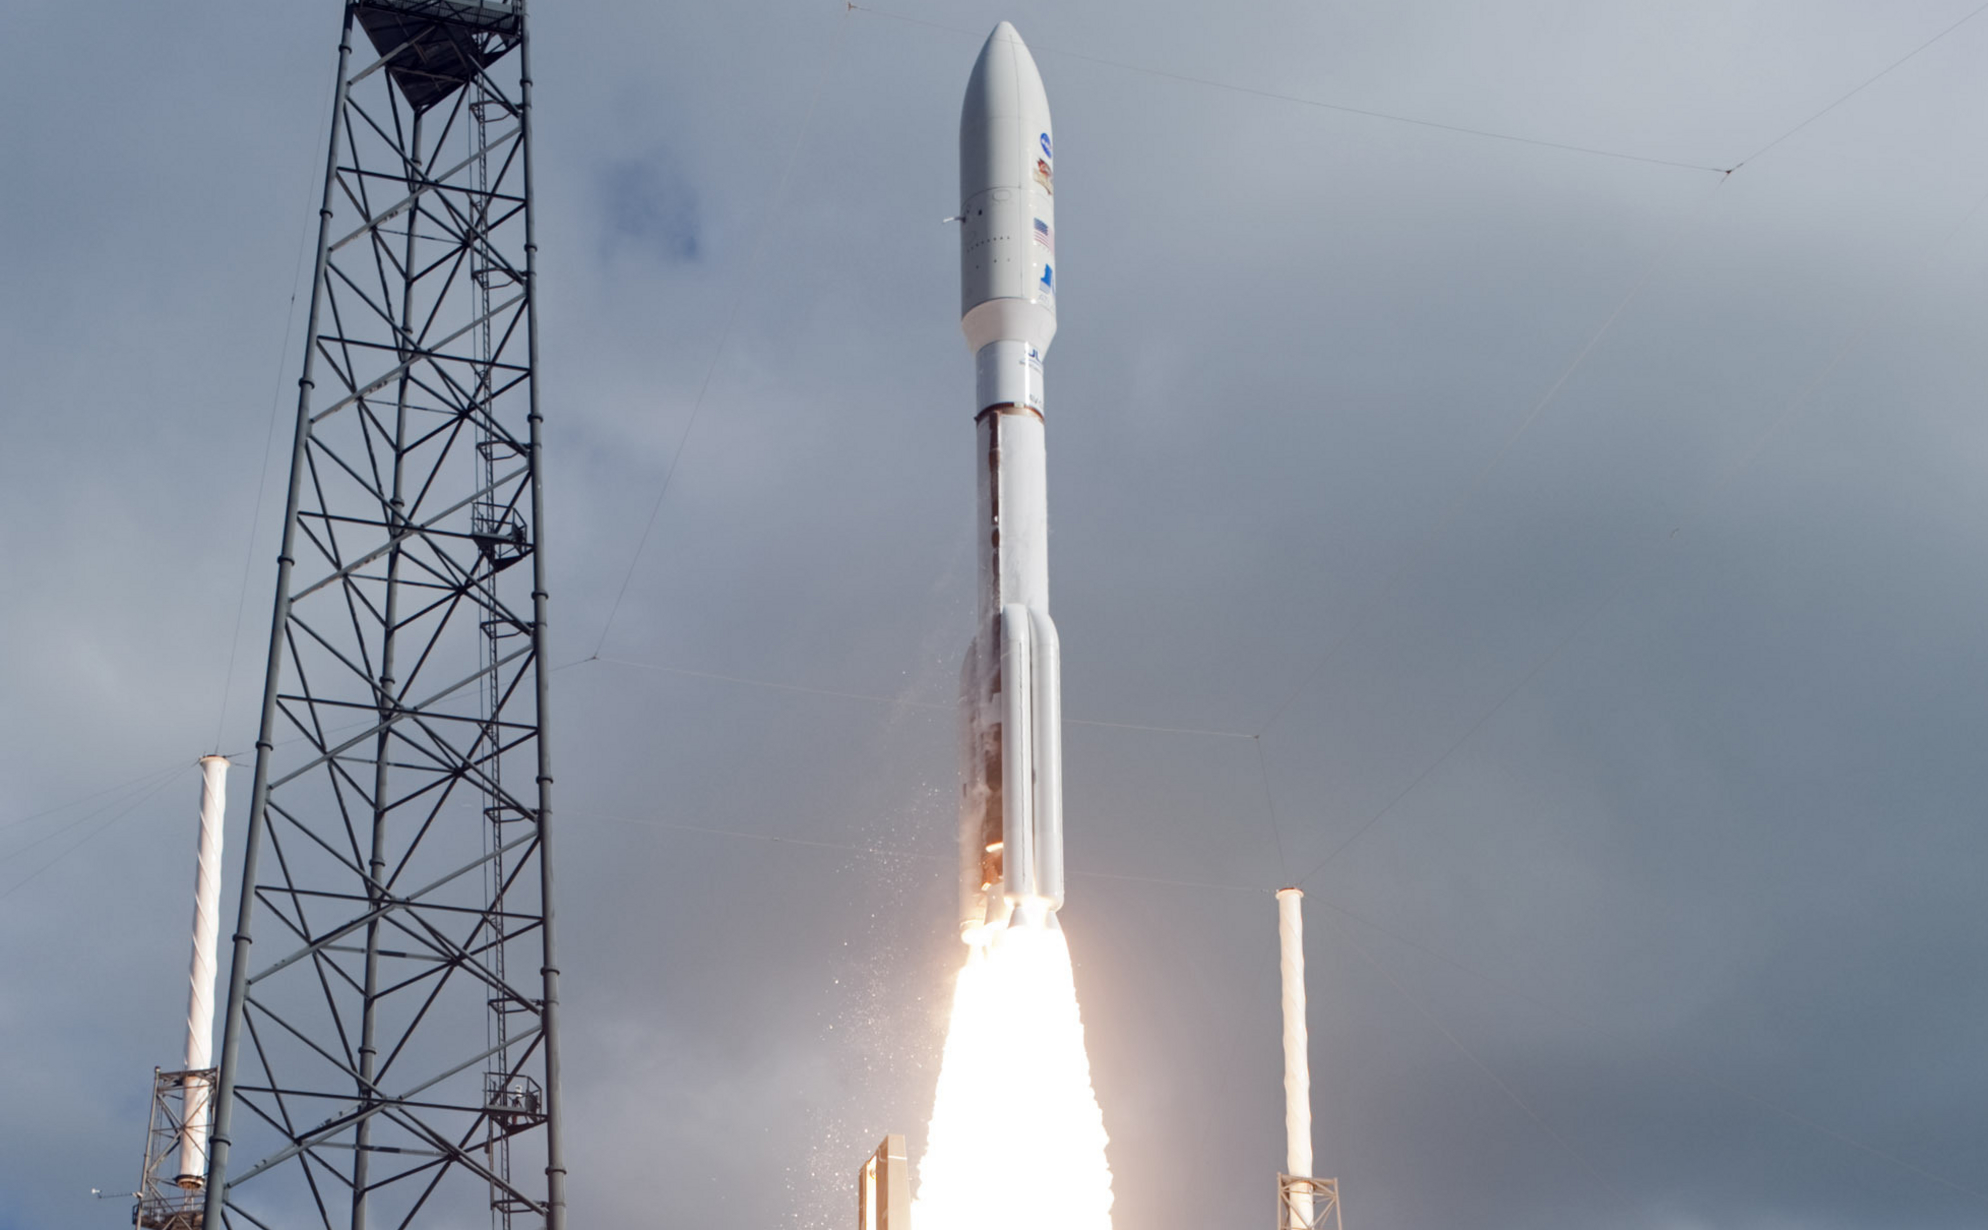 With NASA's Mars Science Laboratory (MSL) spacecraft sealed inside its payload fairing, the United Launch Alliance Atlas V rocket lifts off from Space Launch Complex-41 on Cape Canaveral Air Force Station in Florida at 10:02 a.m. EST Nov. 26.